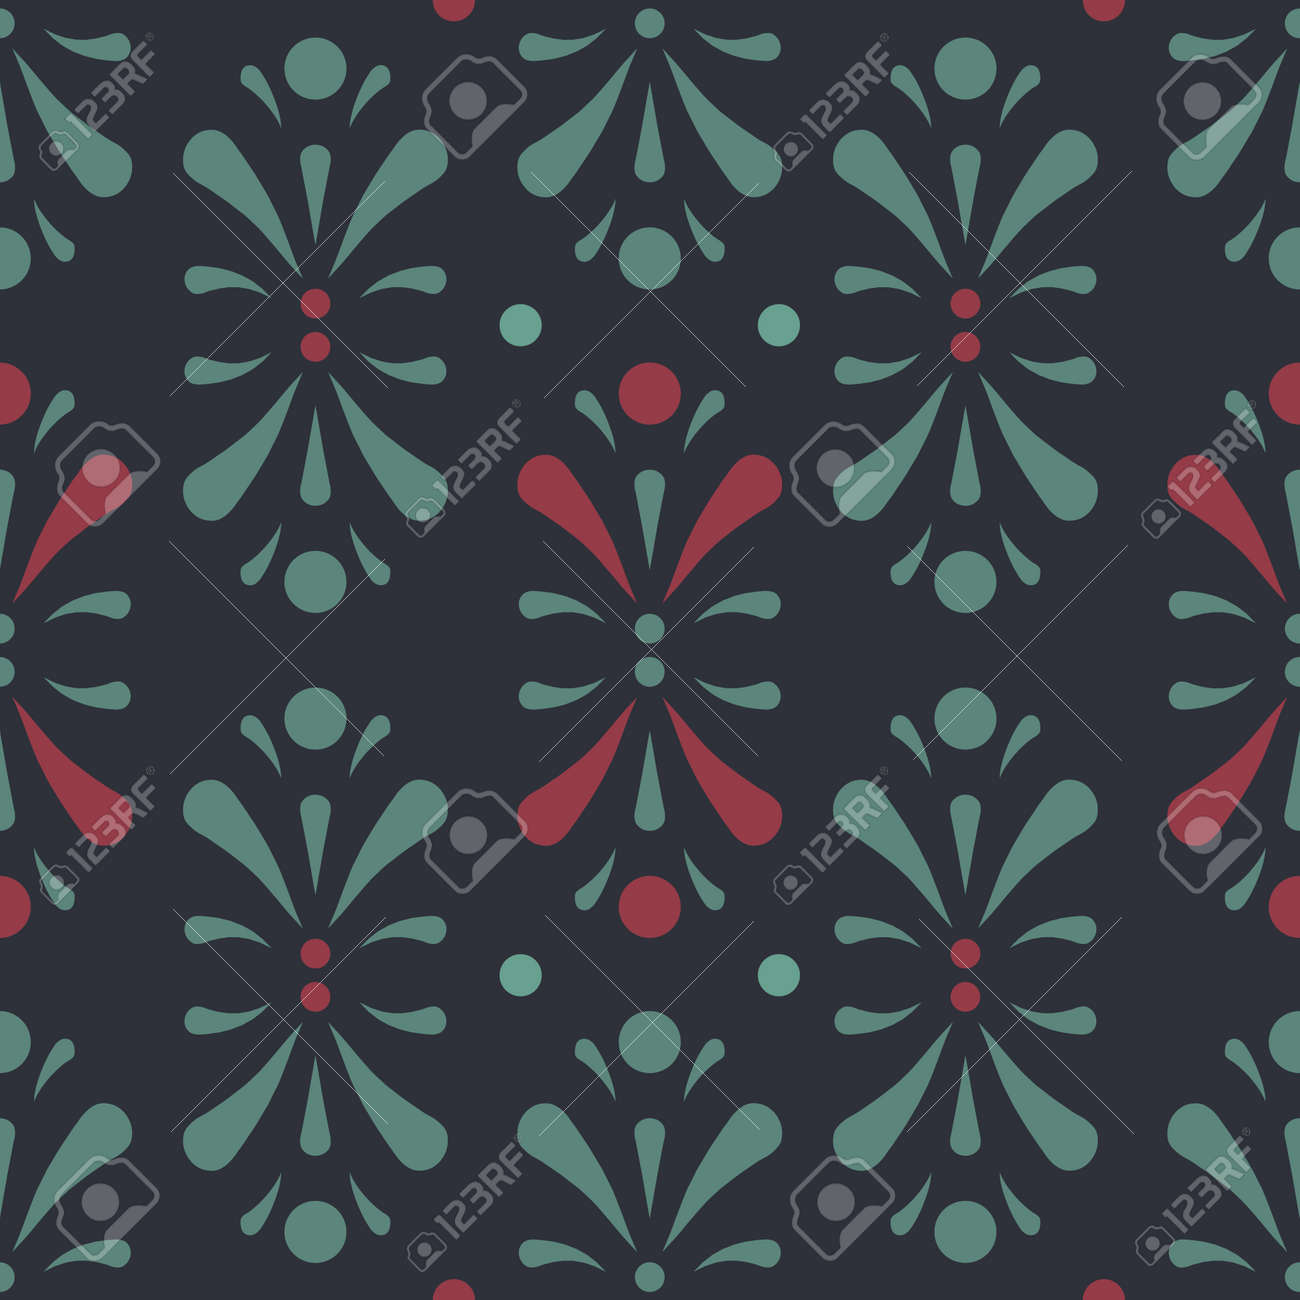 Vector Abstract Floral Design In Dark Green And Red Seamless